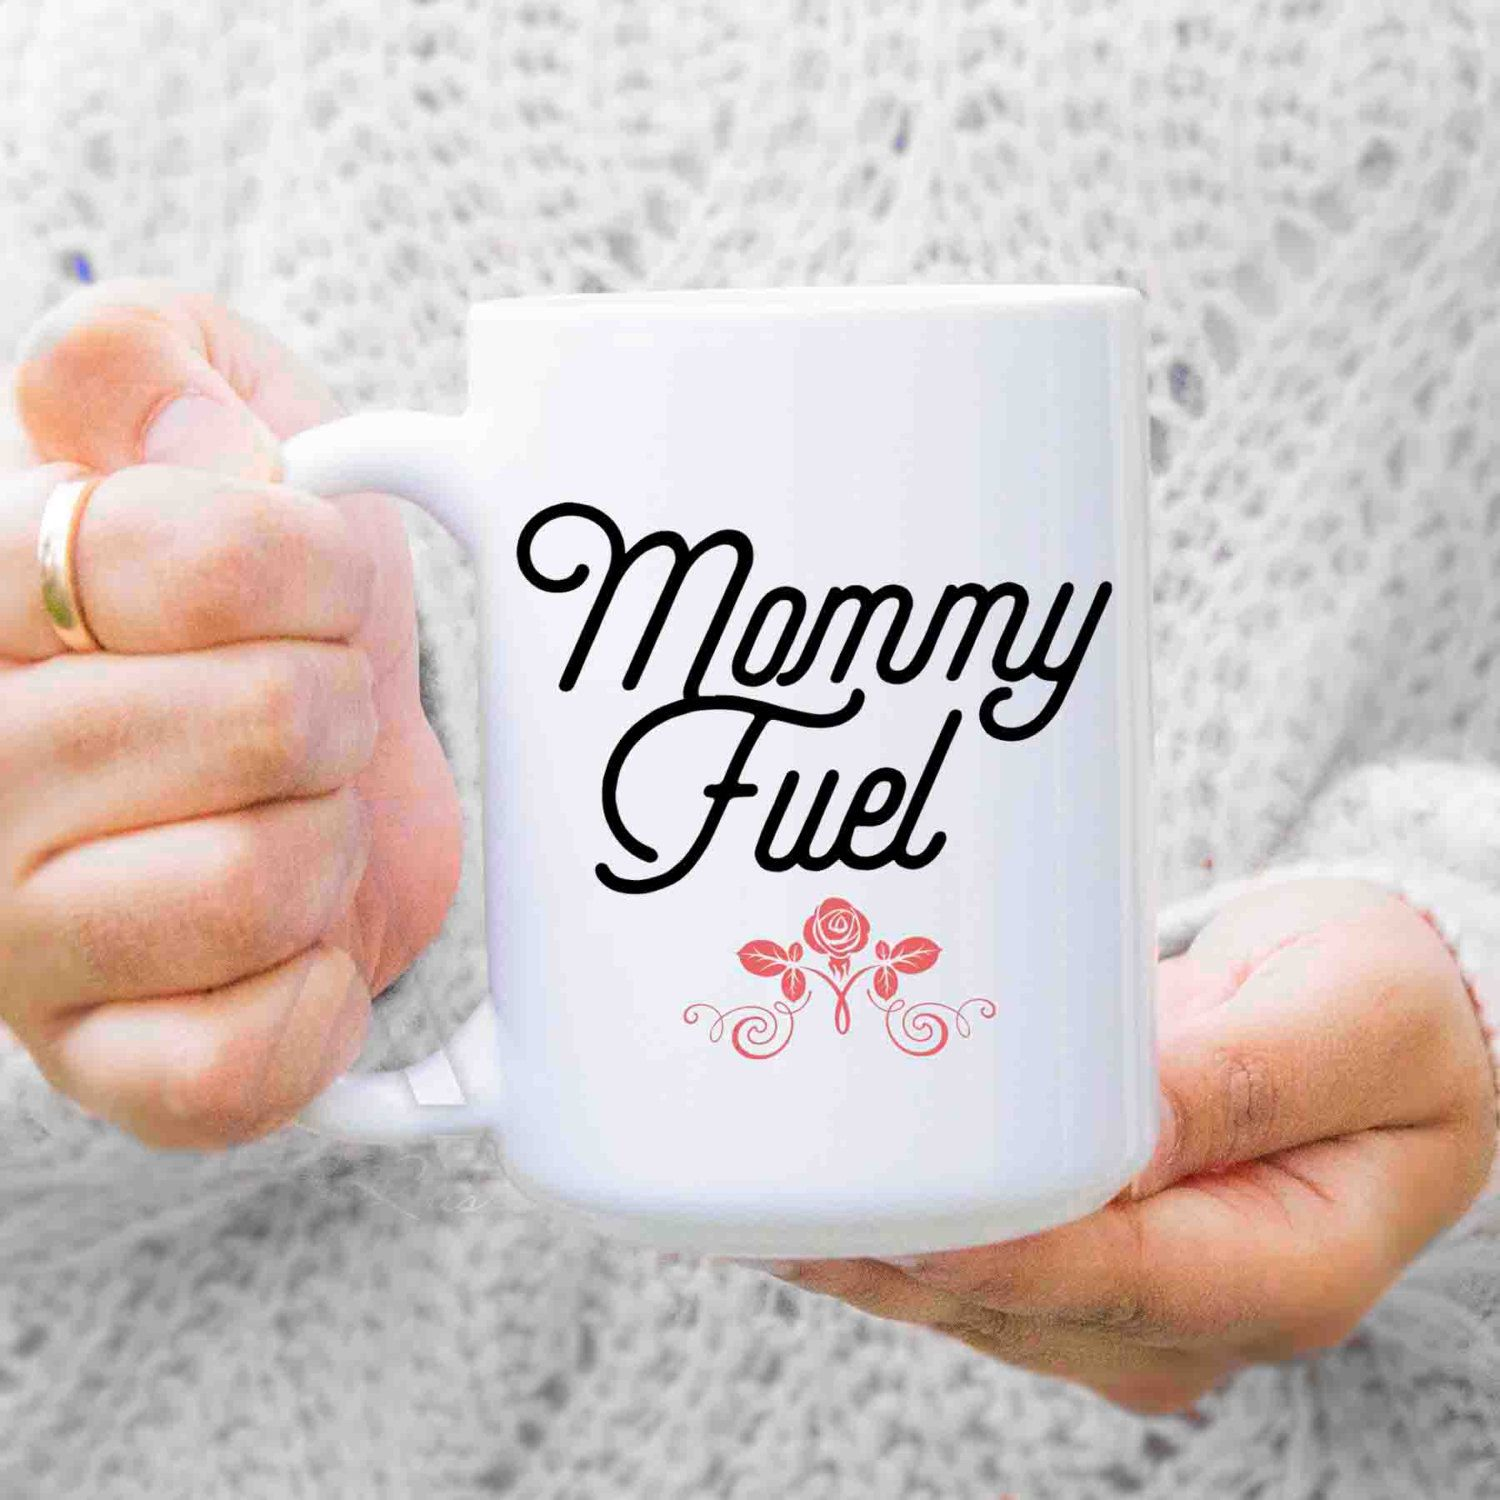 New Mom Gift Mother Mommy Fuel Coffee Mug Gifts Funny For Birthday From Husband Daughter MU388 By ArtRuss On